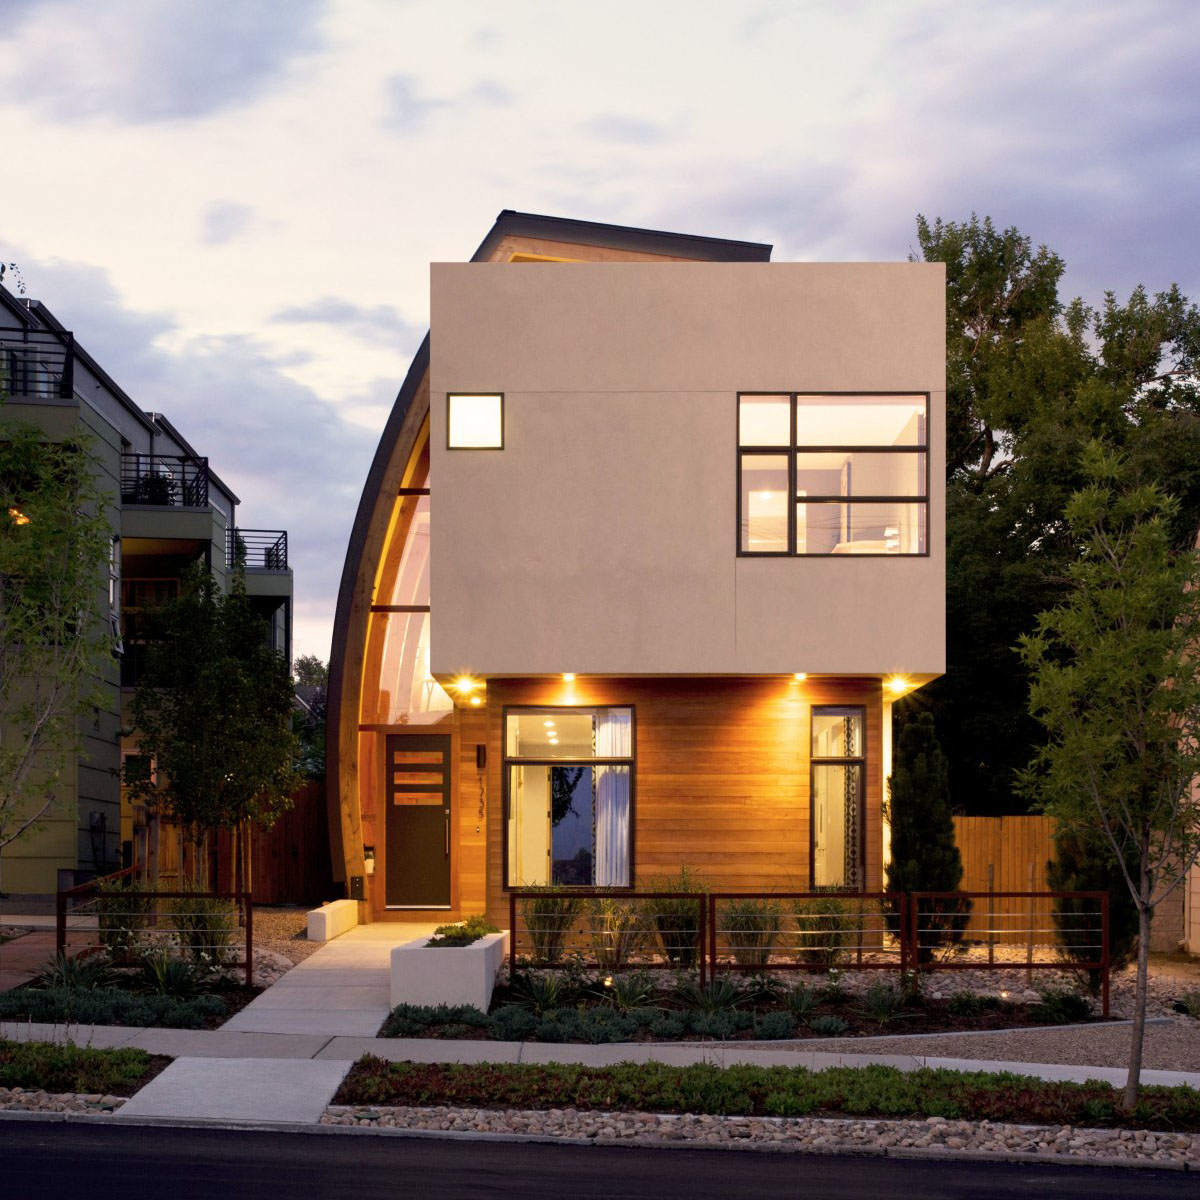 Inspiring urban infill with sun catching curve metal for Architectural homes